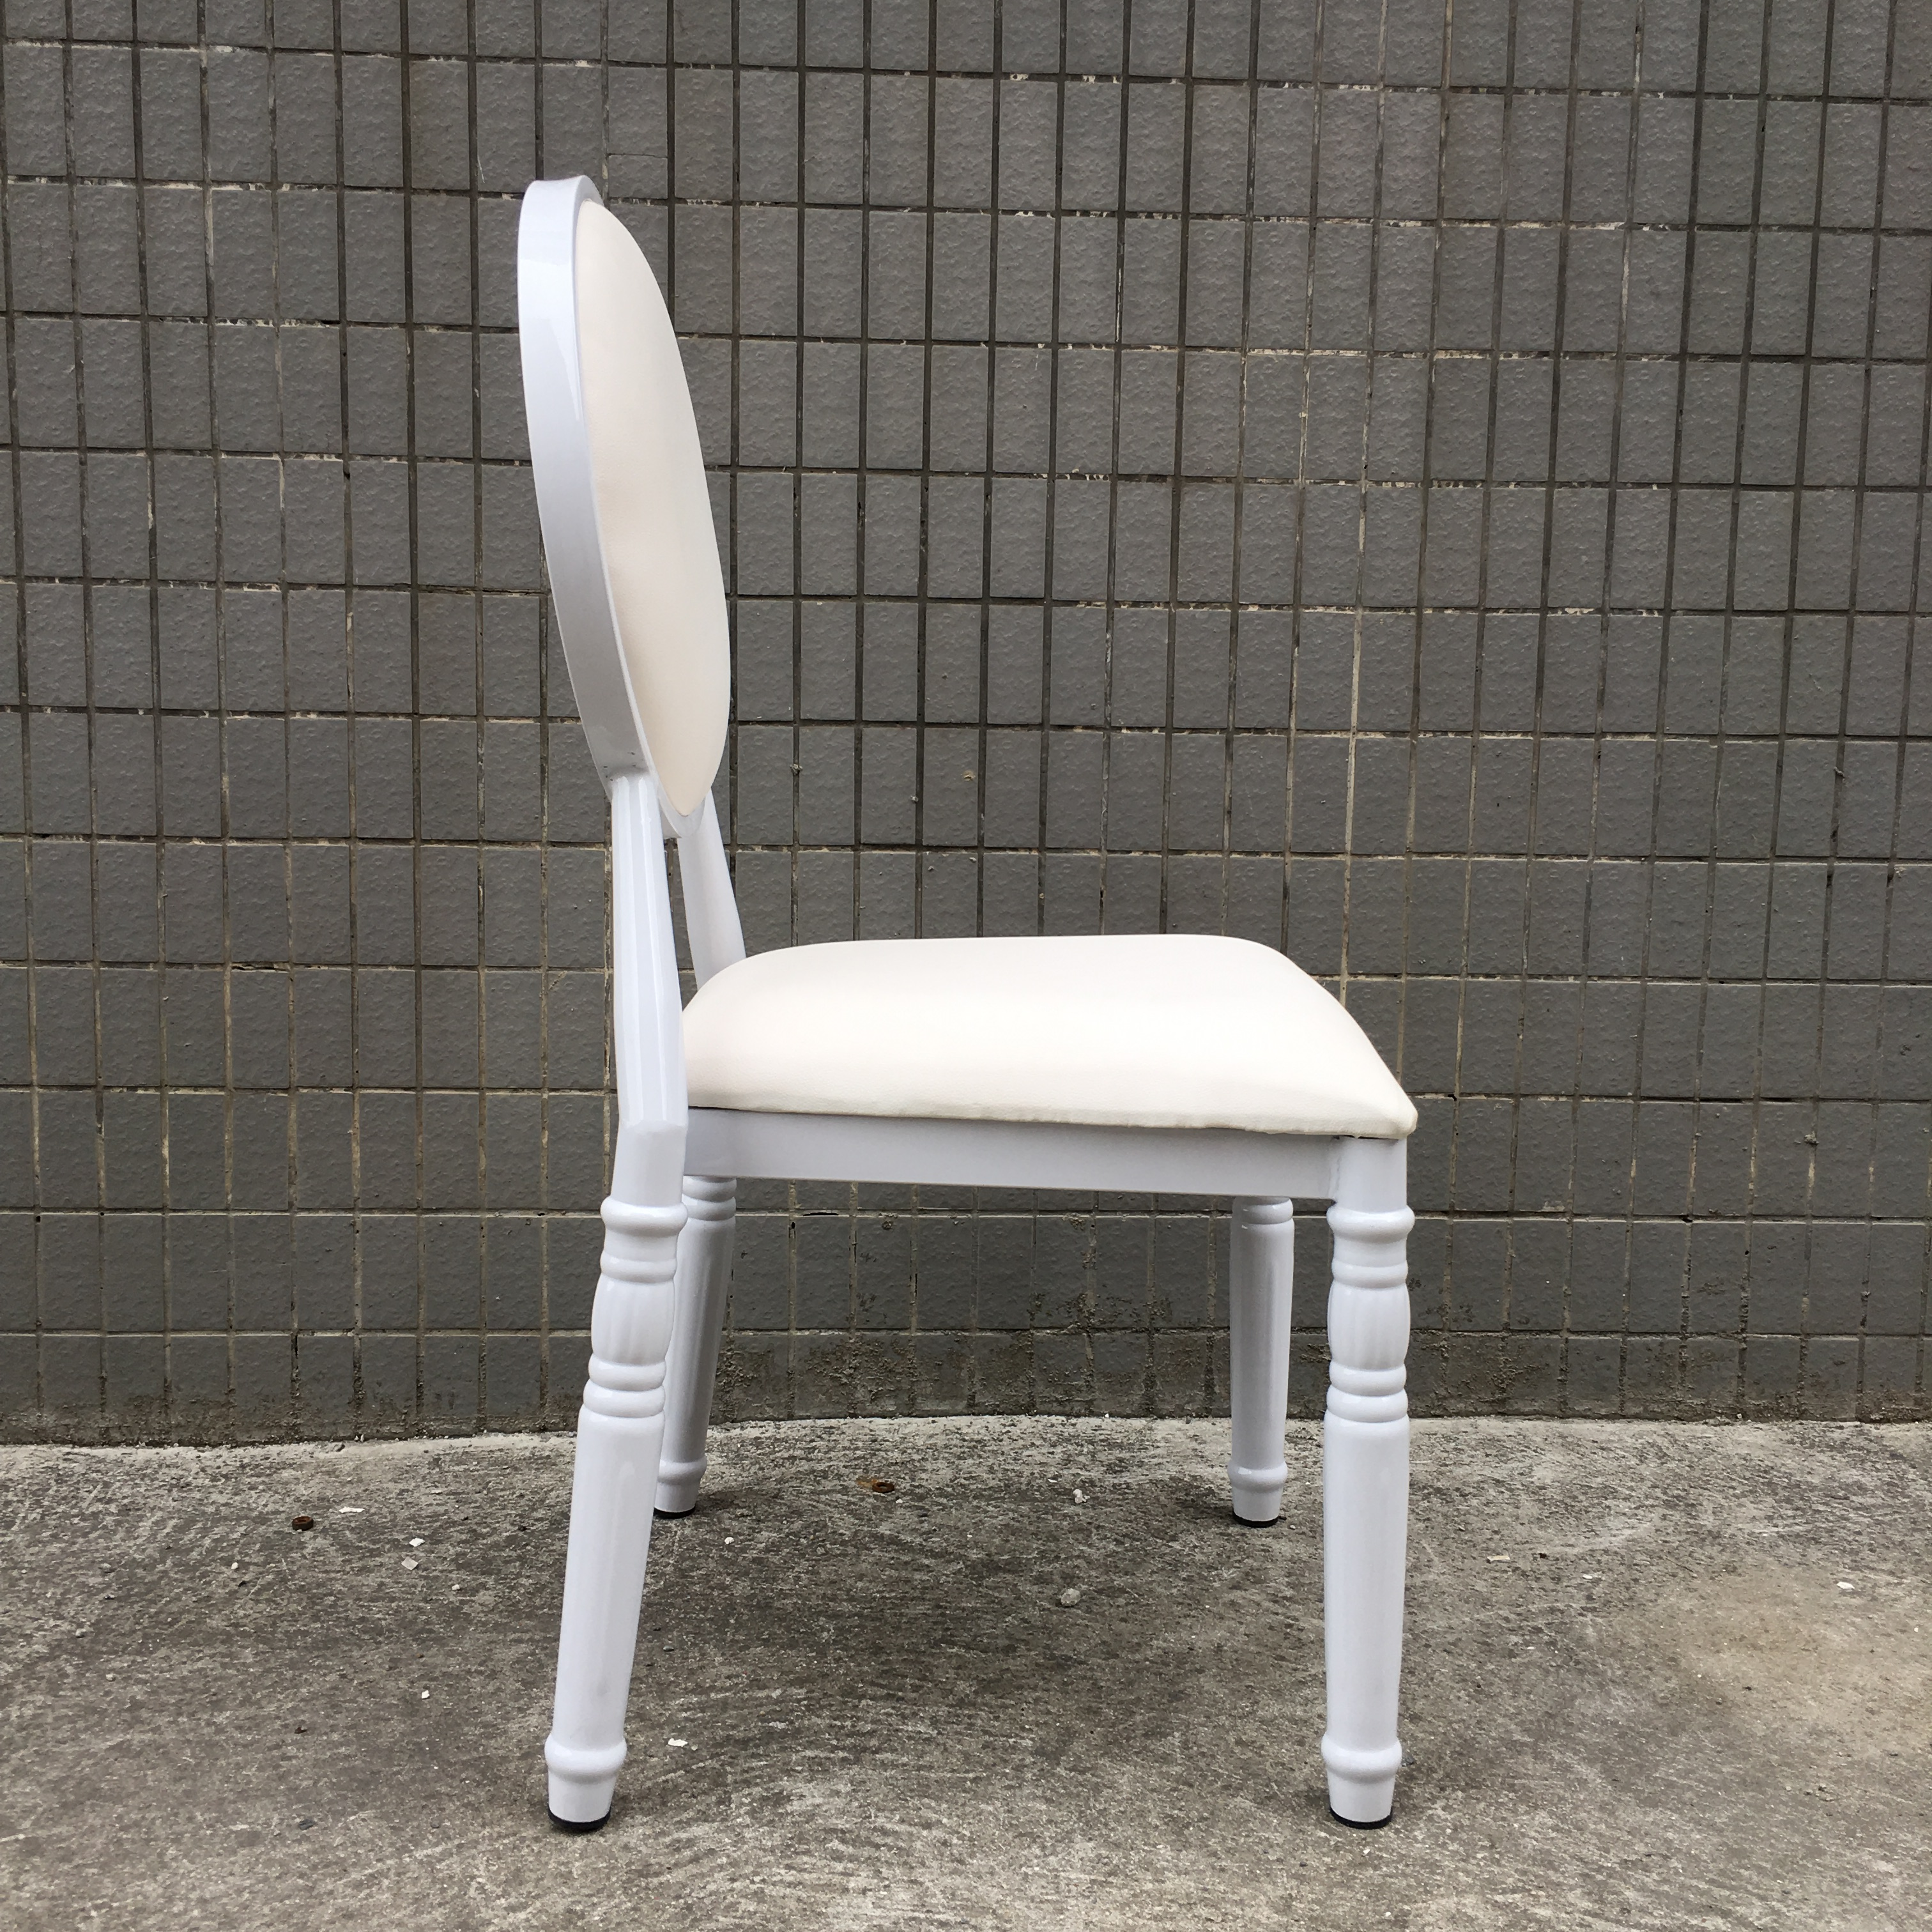 Lowest Price for Banquet Furniture Wholesale -